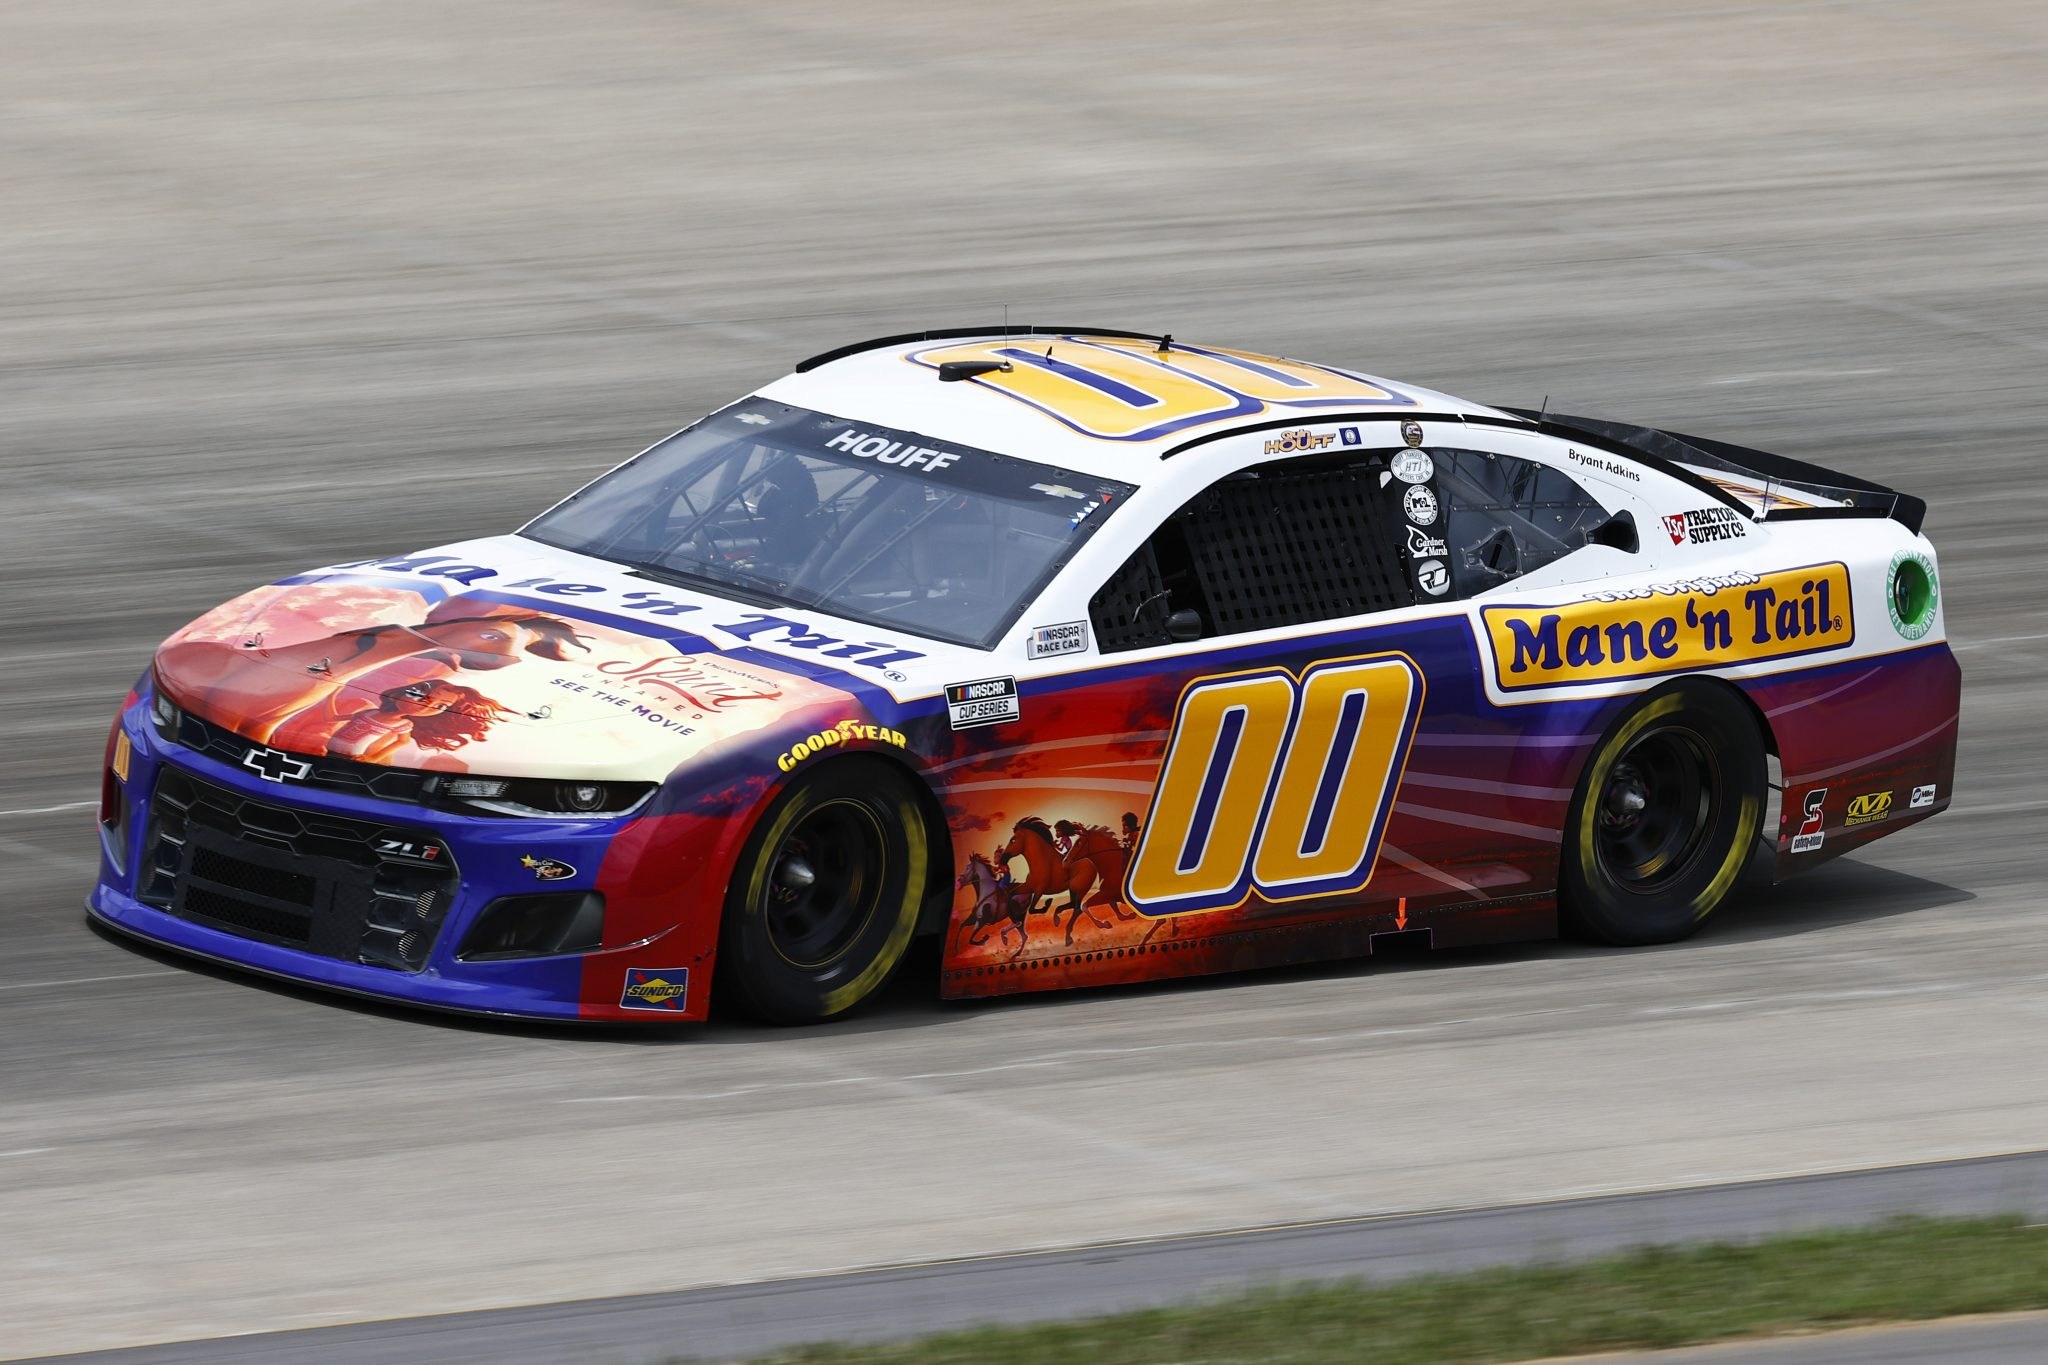 LEBANON, TENNESSEE - JUNE 19: Quin Houff, driver of the #00 Mane 'n Tail/Spirit Untamed Chevrolet, drives during practice for the NASCAR Cup Series Ally 400 at Nashville Superspeedway on June 19, 2021 in Lebanon, Tennessee. (Photo by Jared C. Tilton/Getty Images)   Getty Images